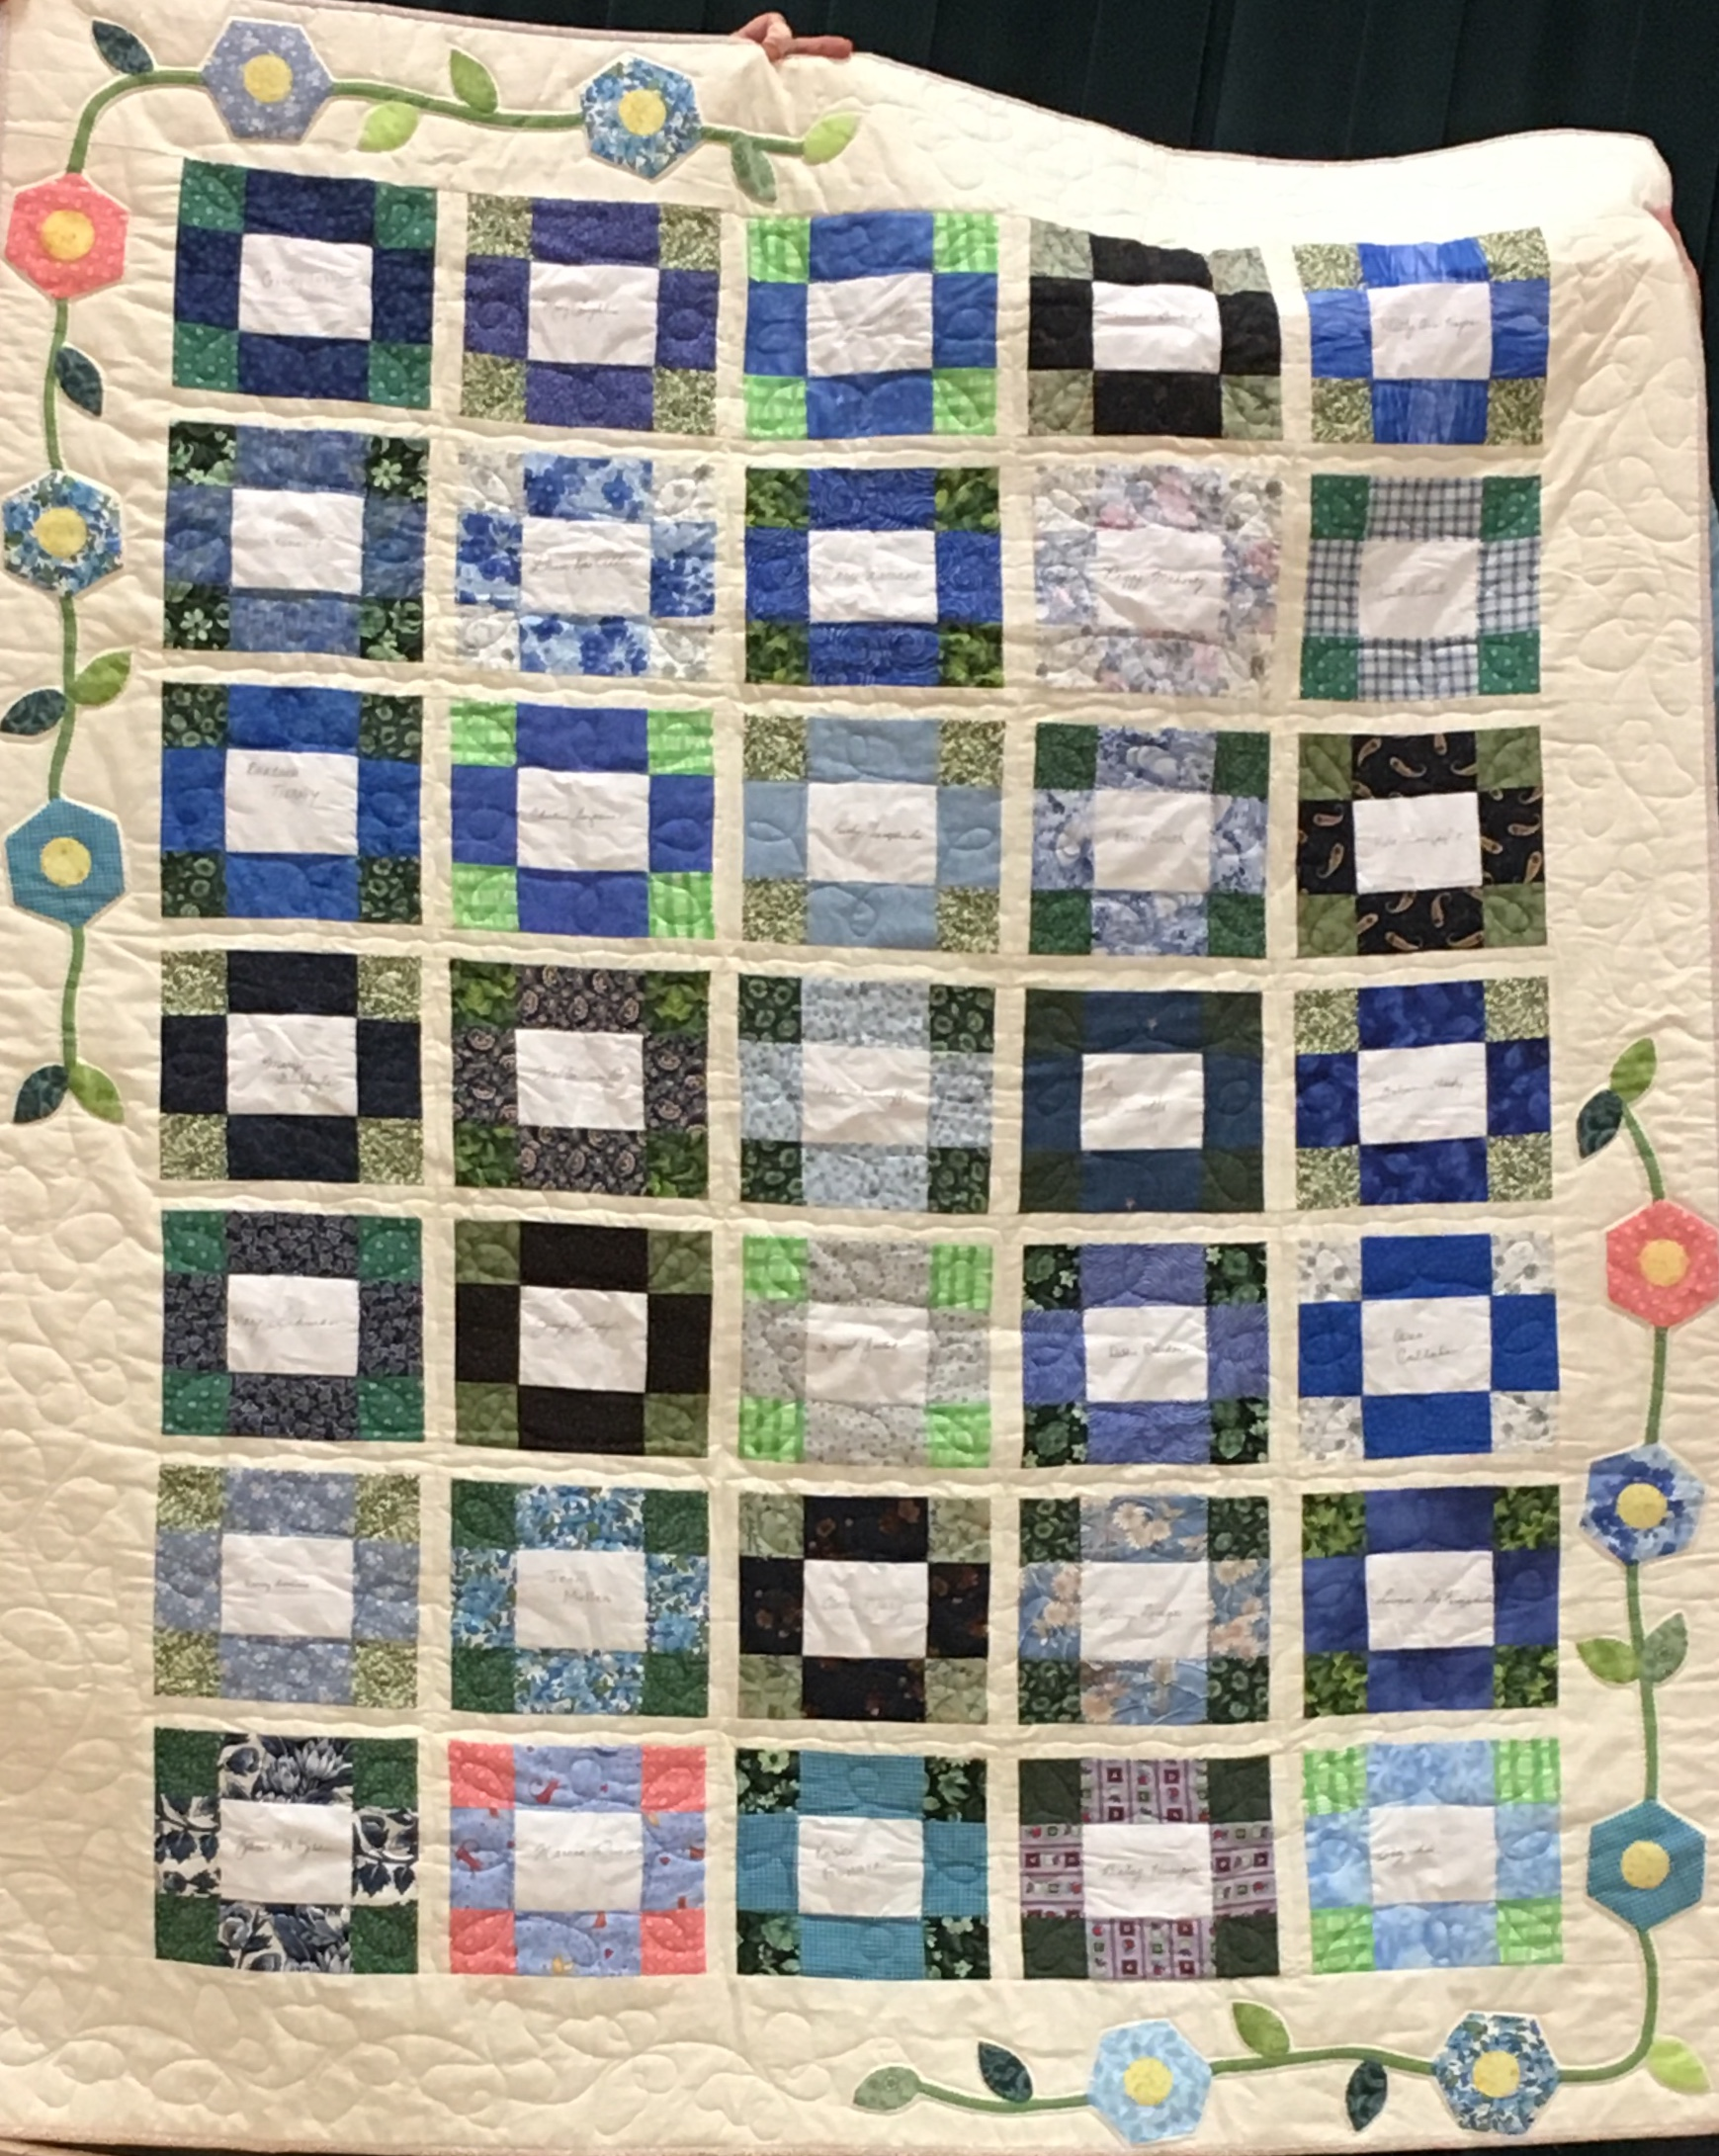 Signature Quilt, 13 yrs old